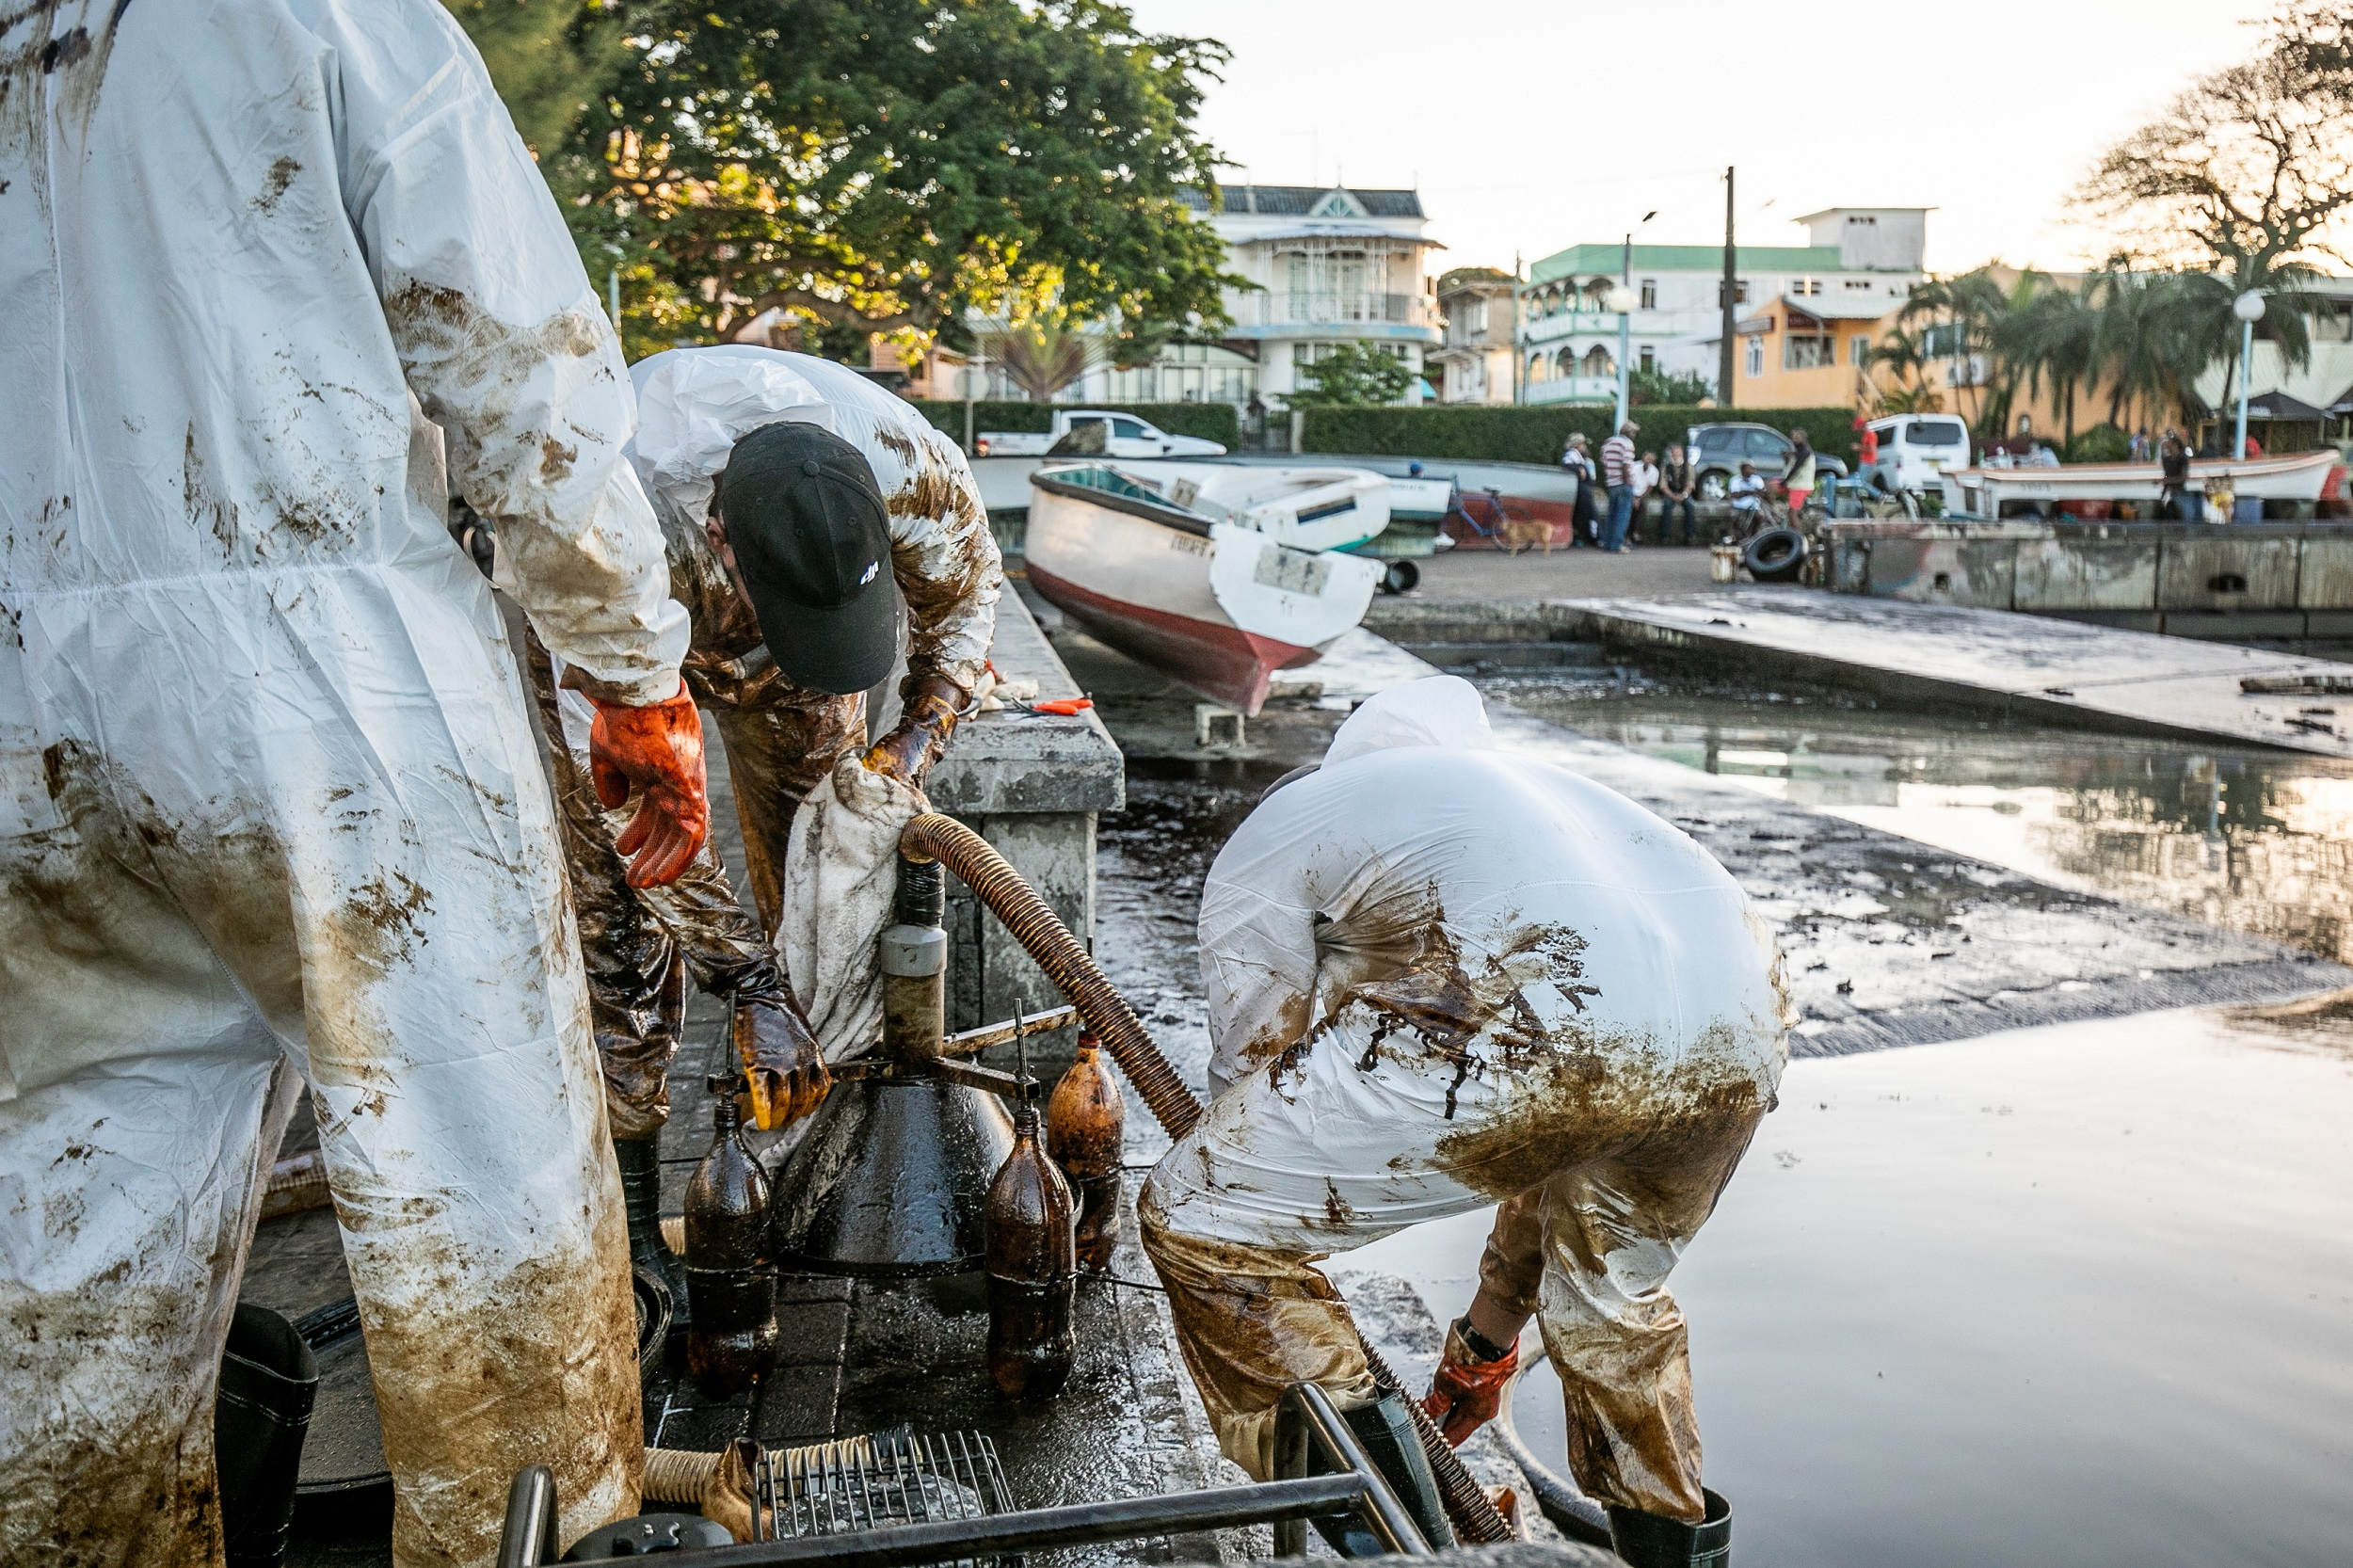 Fishermen and skippers tend to a makeshift oil extraction device at the Mahébourg waterfront in Mauritius in order to prevent a further oil spill from the MV Wakashio vessel.